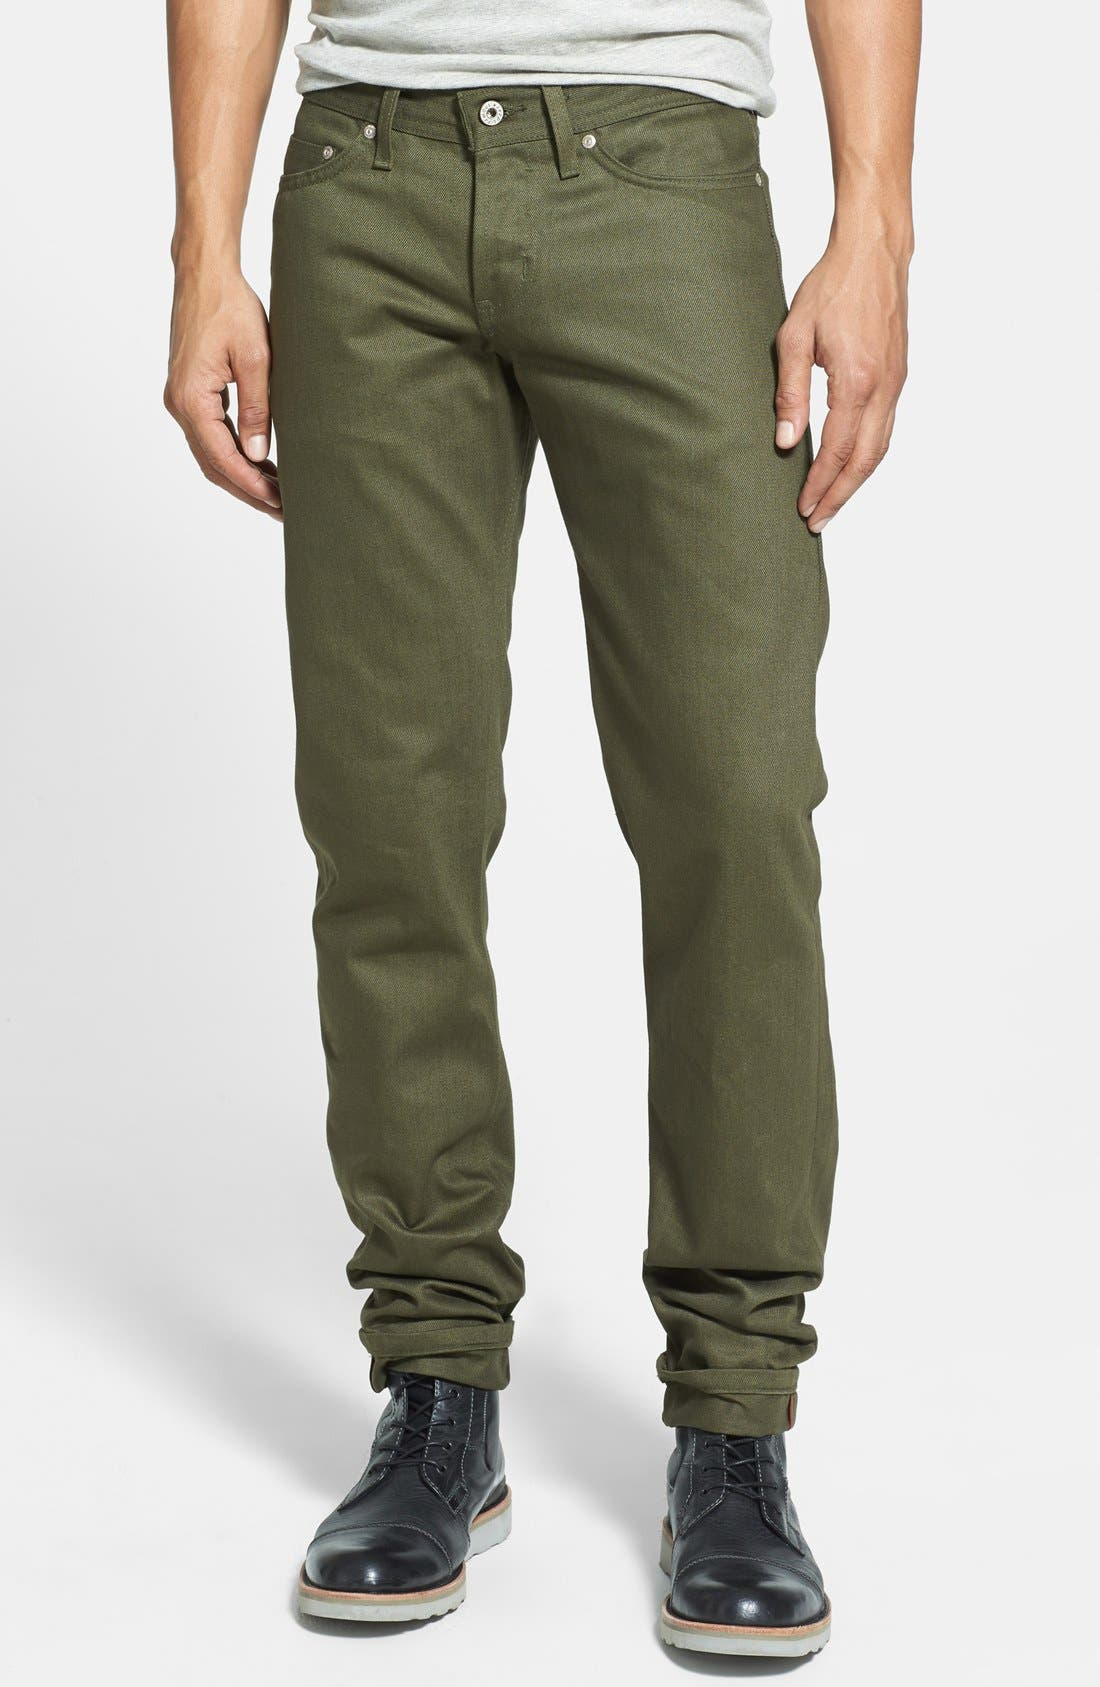 'Weird Guy' Slim Fit Jeans,                         Main,                         color, Khaki Green Selvedge Chino